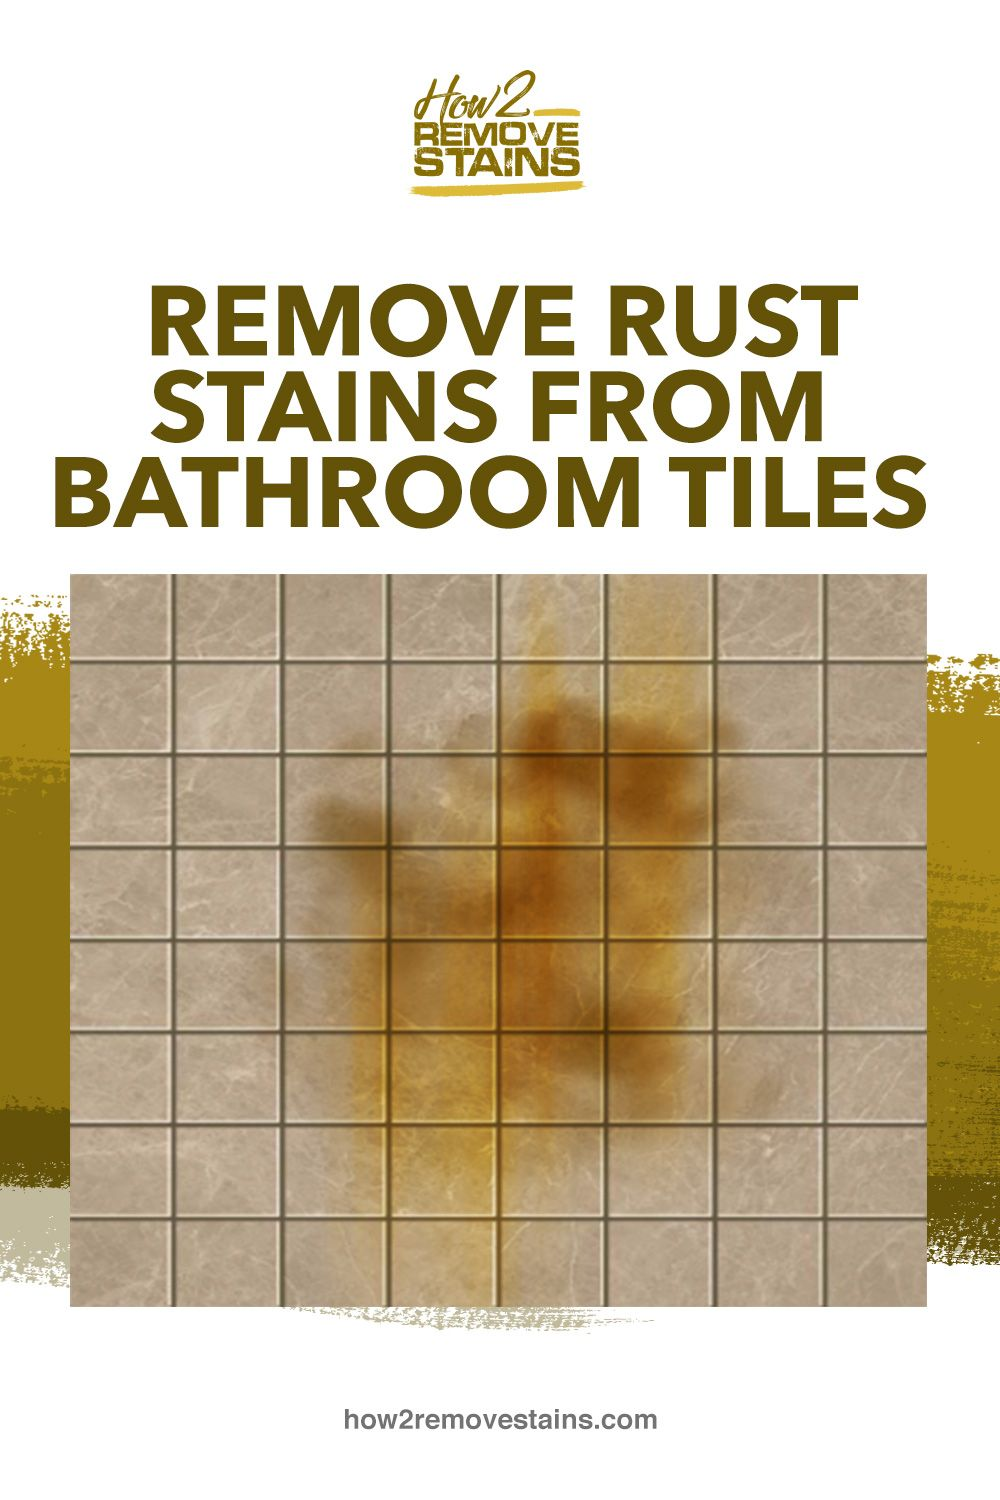 How to remove rust stains from bathroom tiles – Artofit